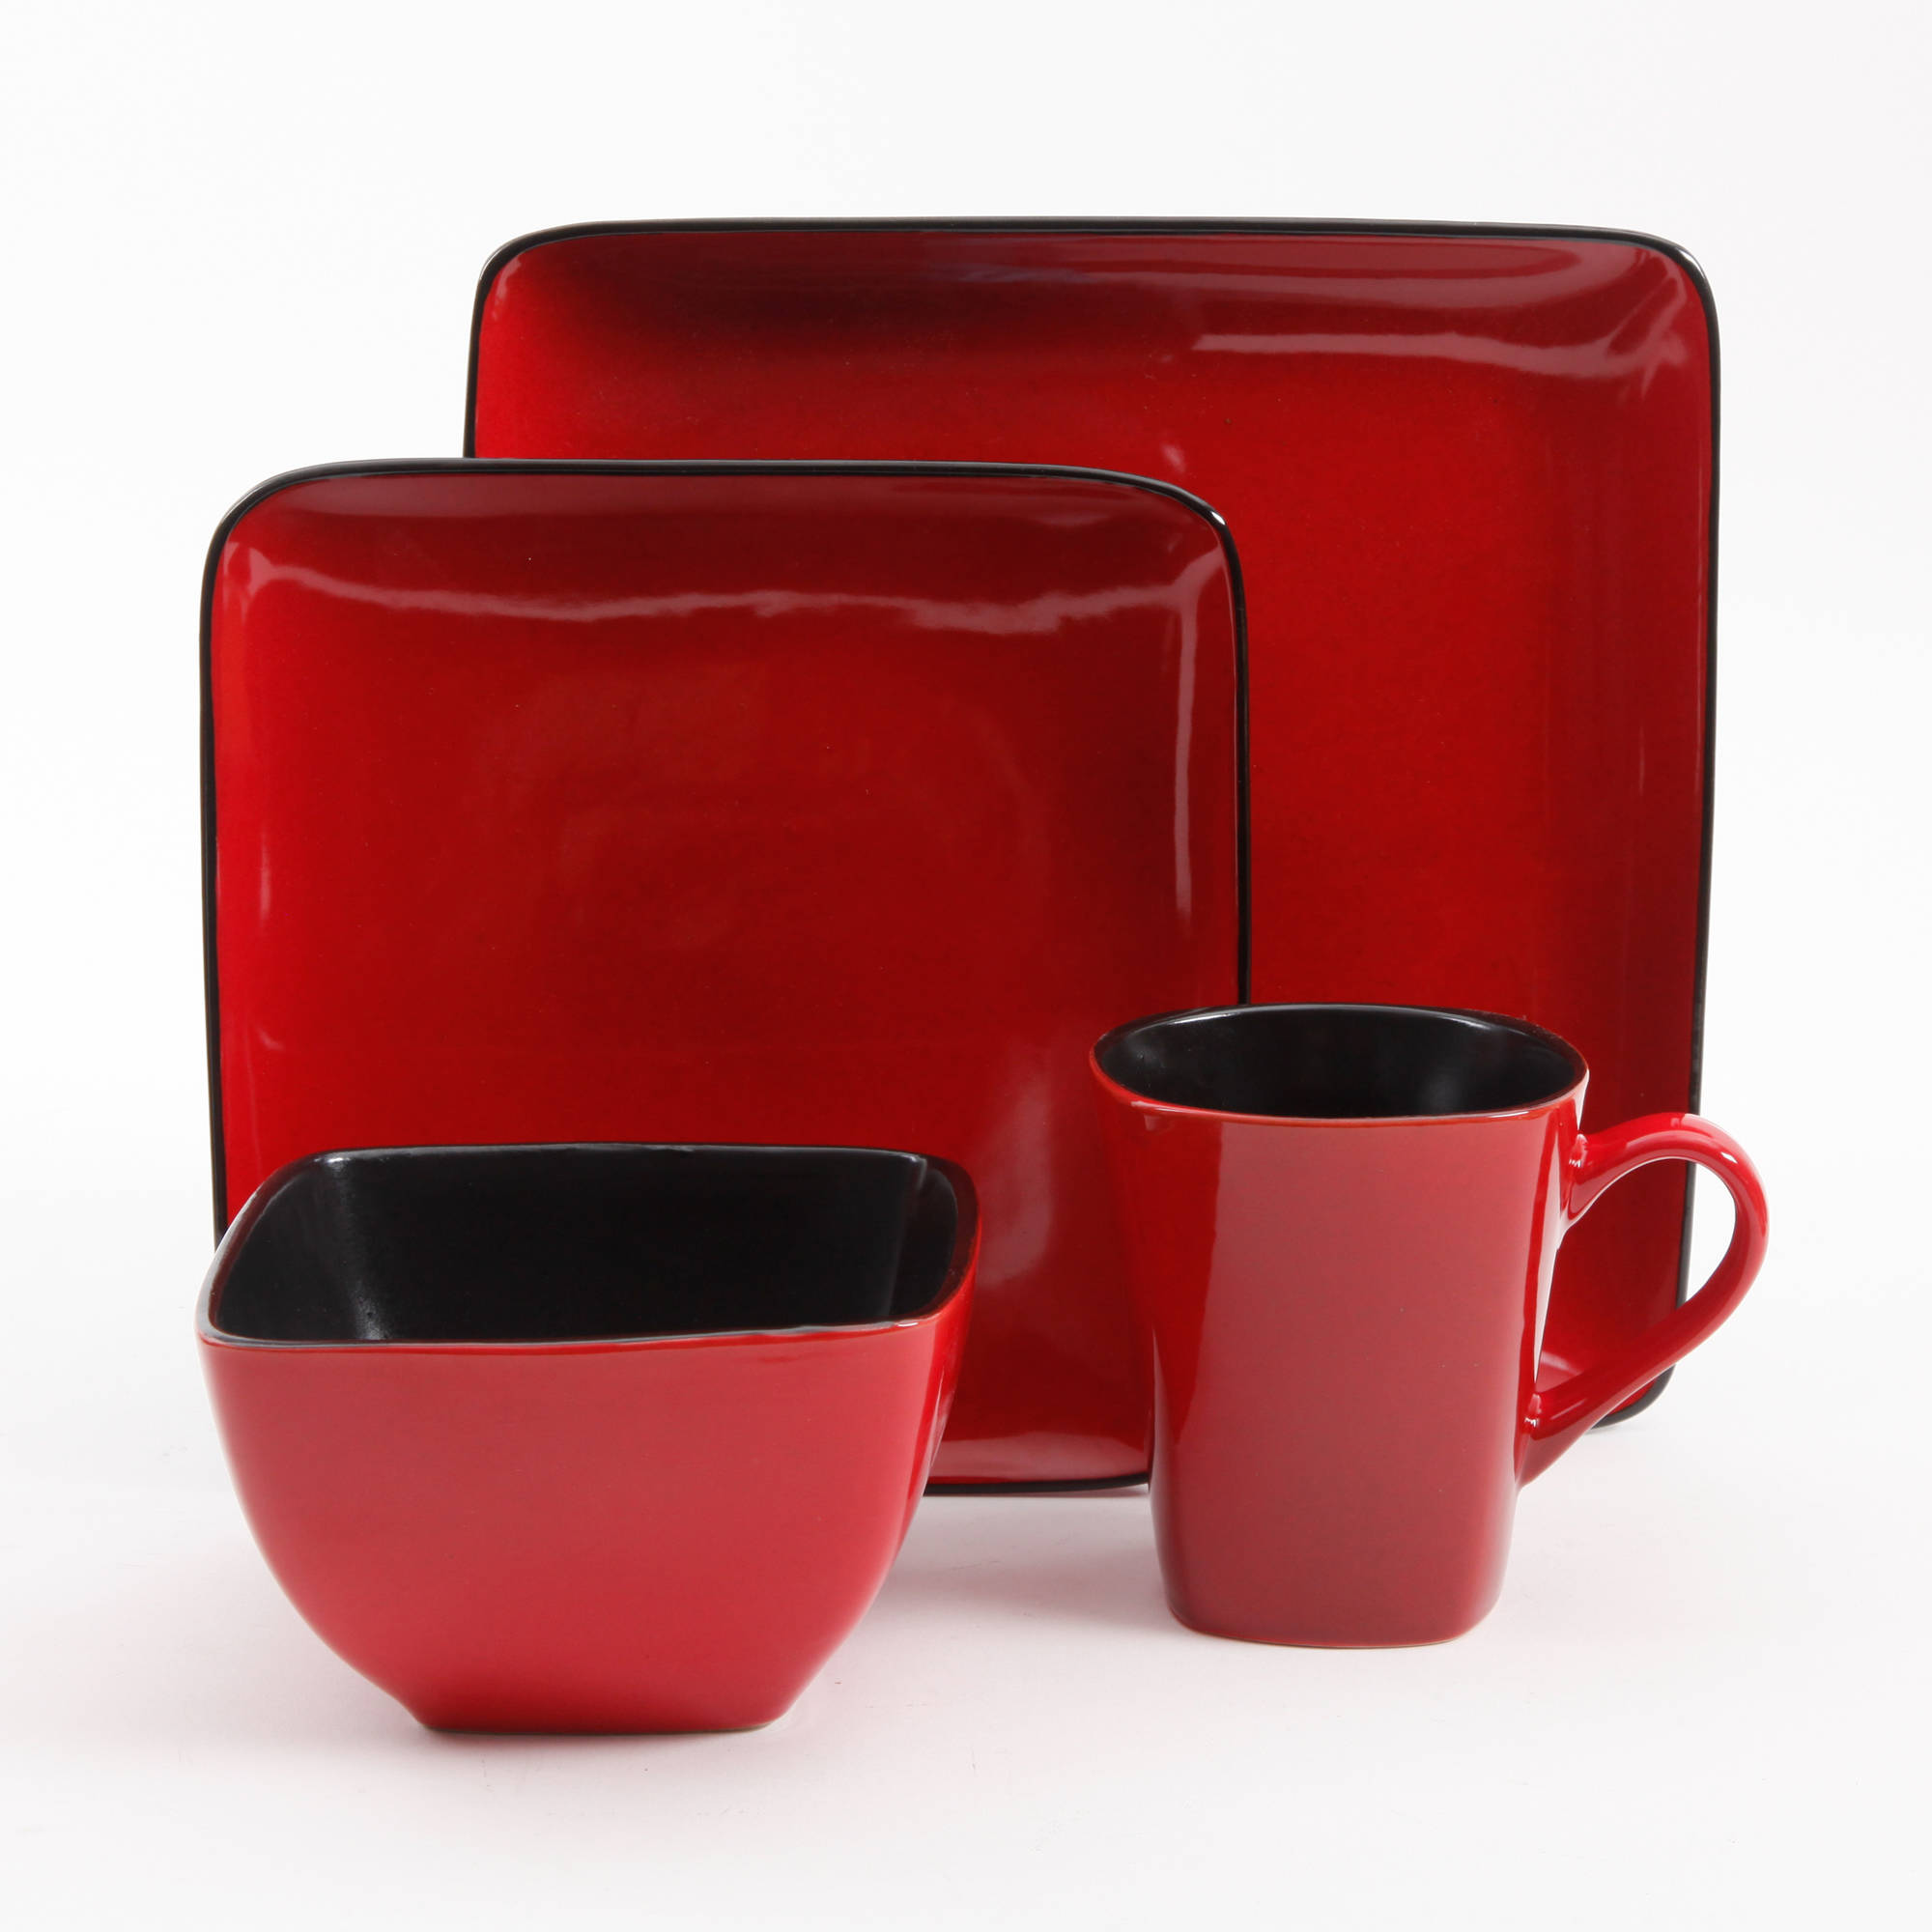 Better Homes \u0026 Gardens Rave 16-Piece Square Dinnerware Set Red - Walmart.com  sc 1 st  Walmart & Better Homes \u0026 Gardens Rave 16-Piece Square Dinnerware Set Red ...